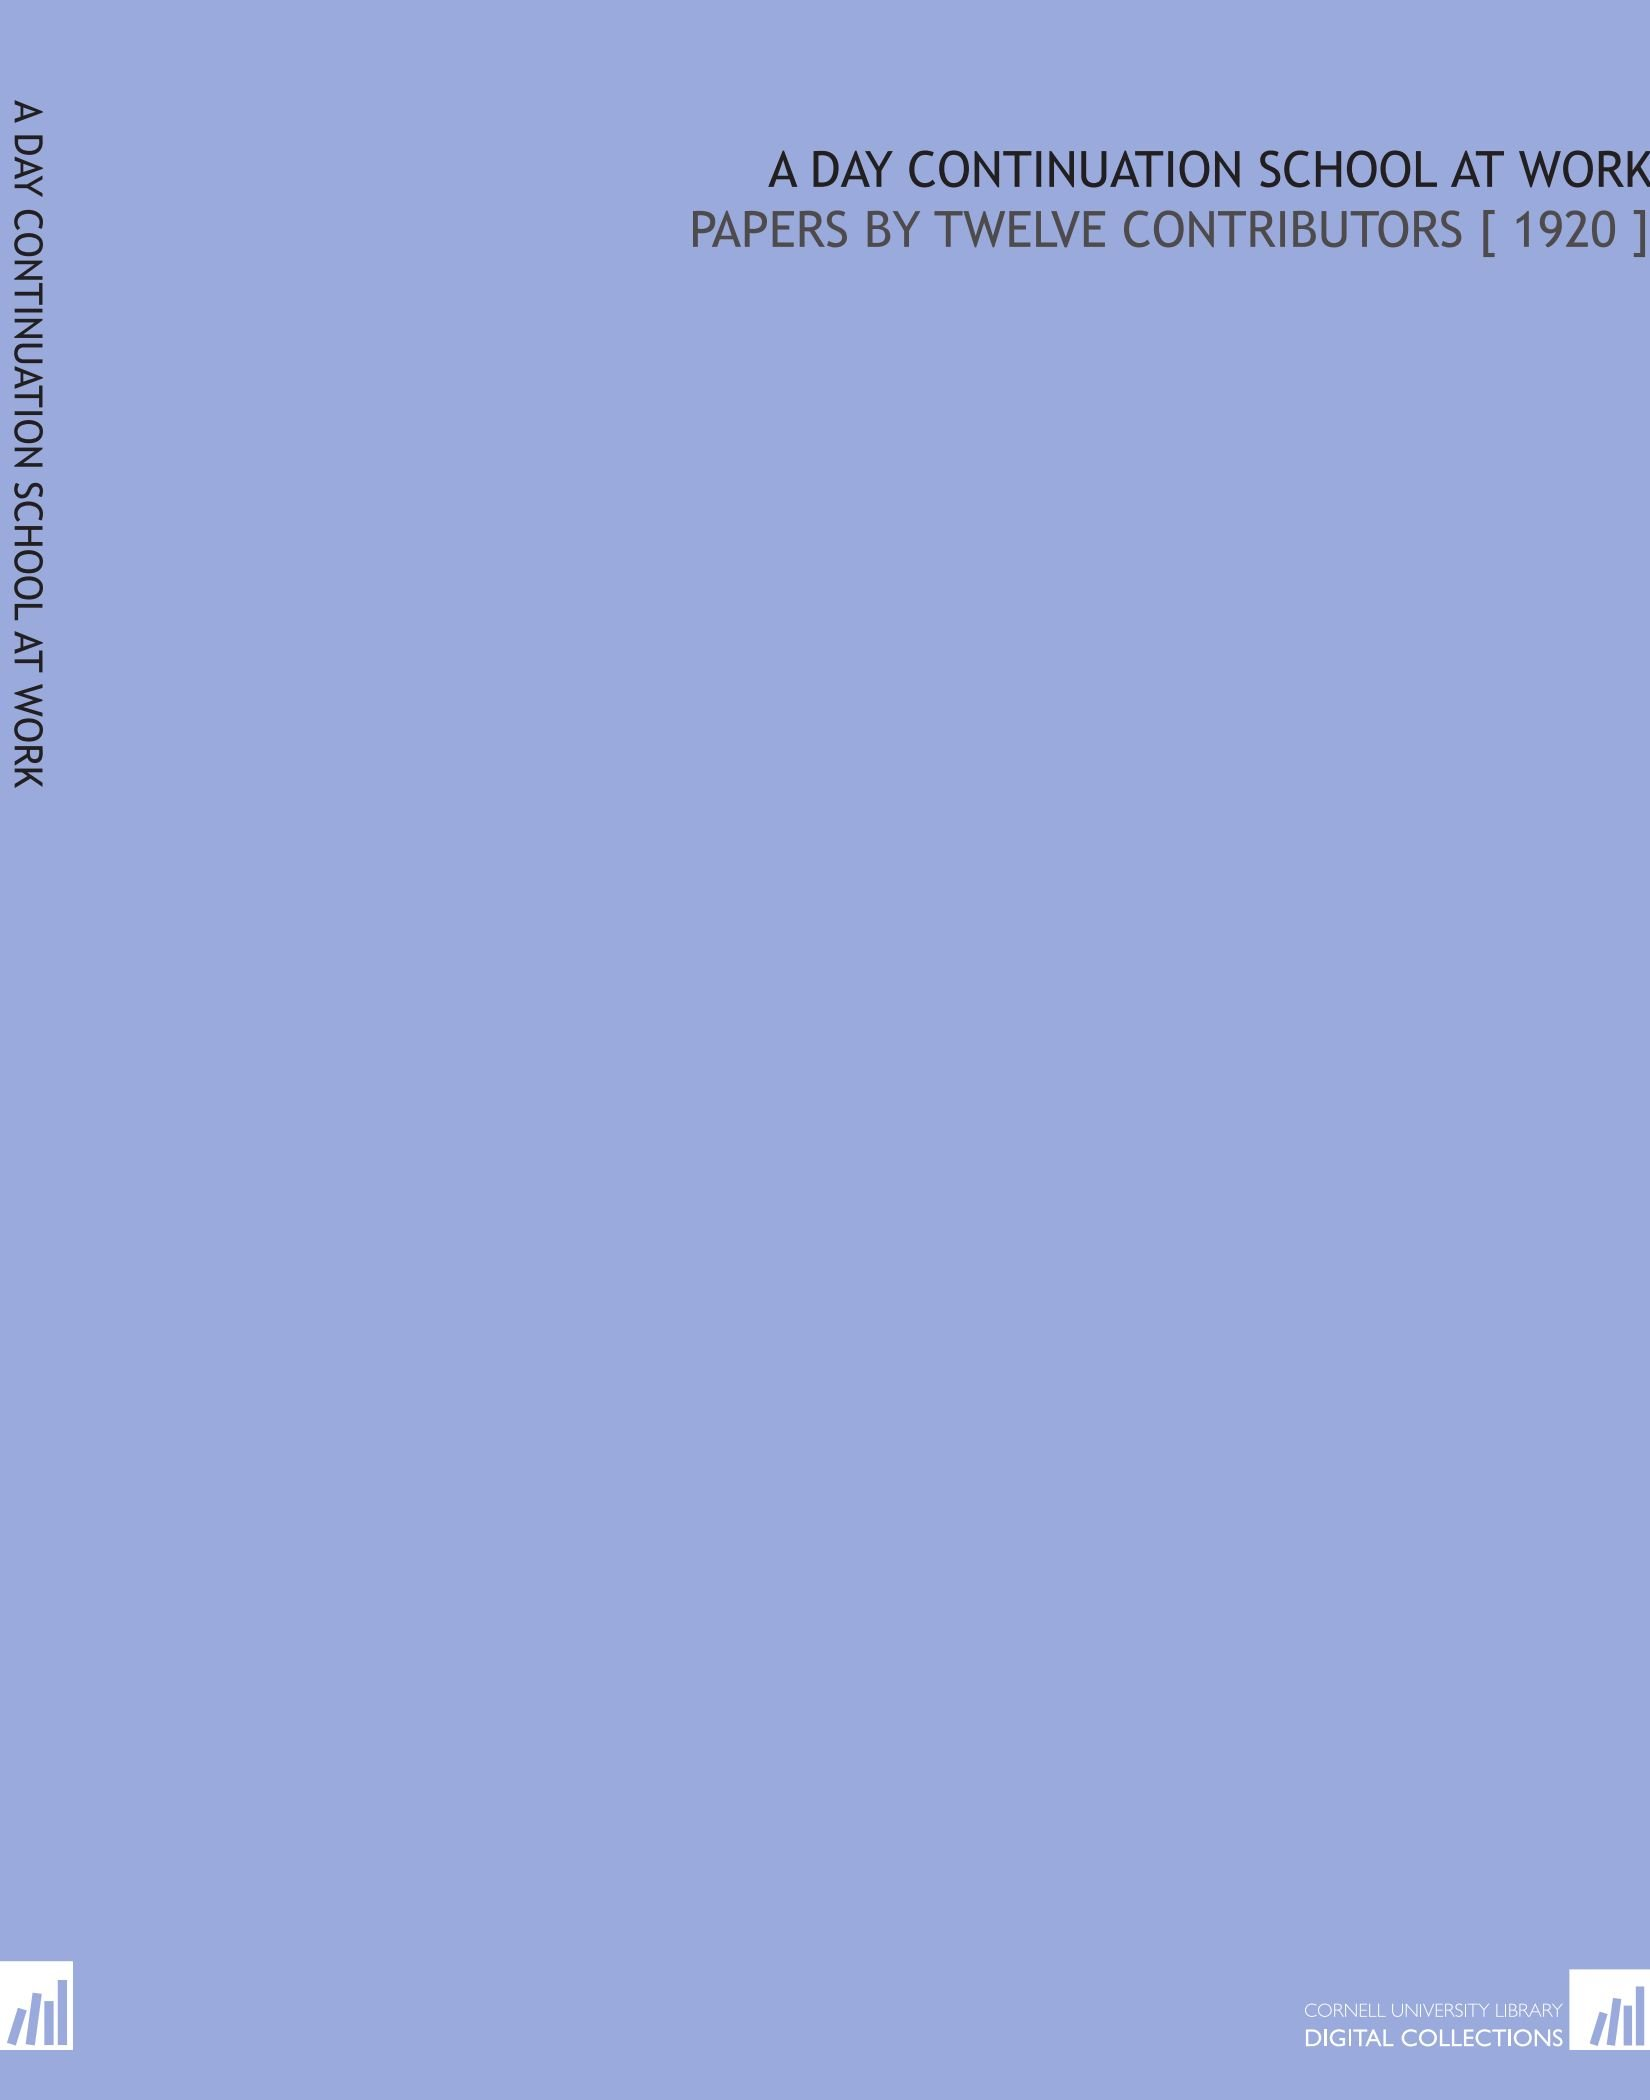 Download A Day Continuation School at Work: Papers by Twelve Contributors [ 1920 ] ebook